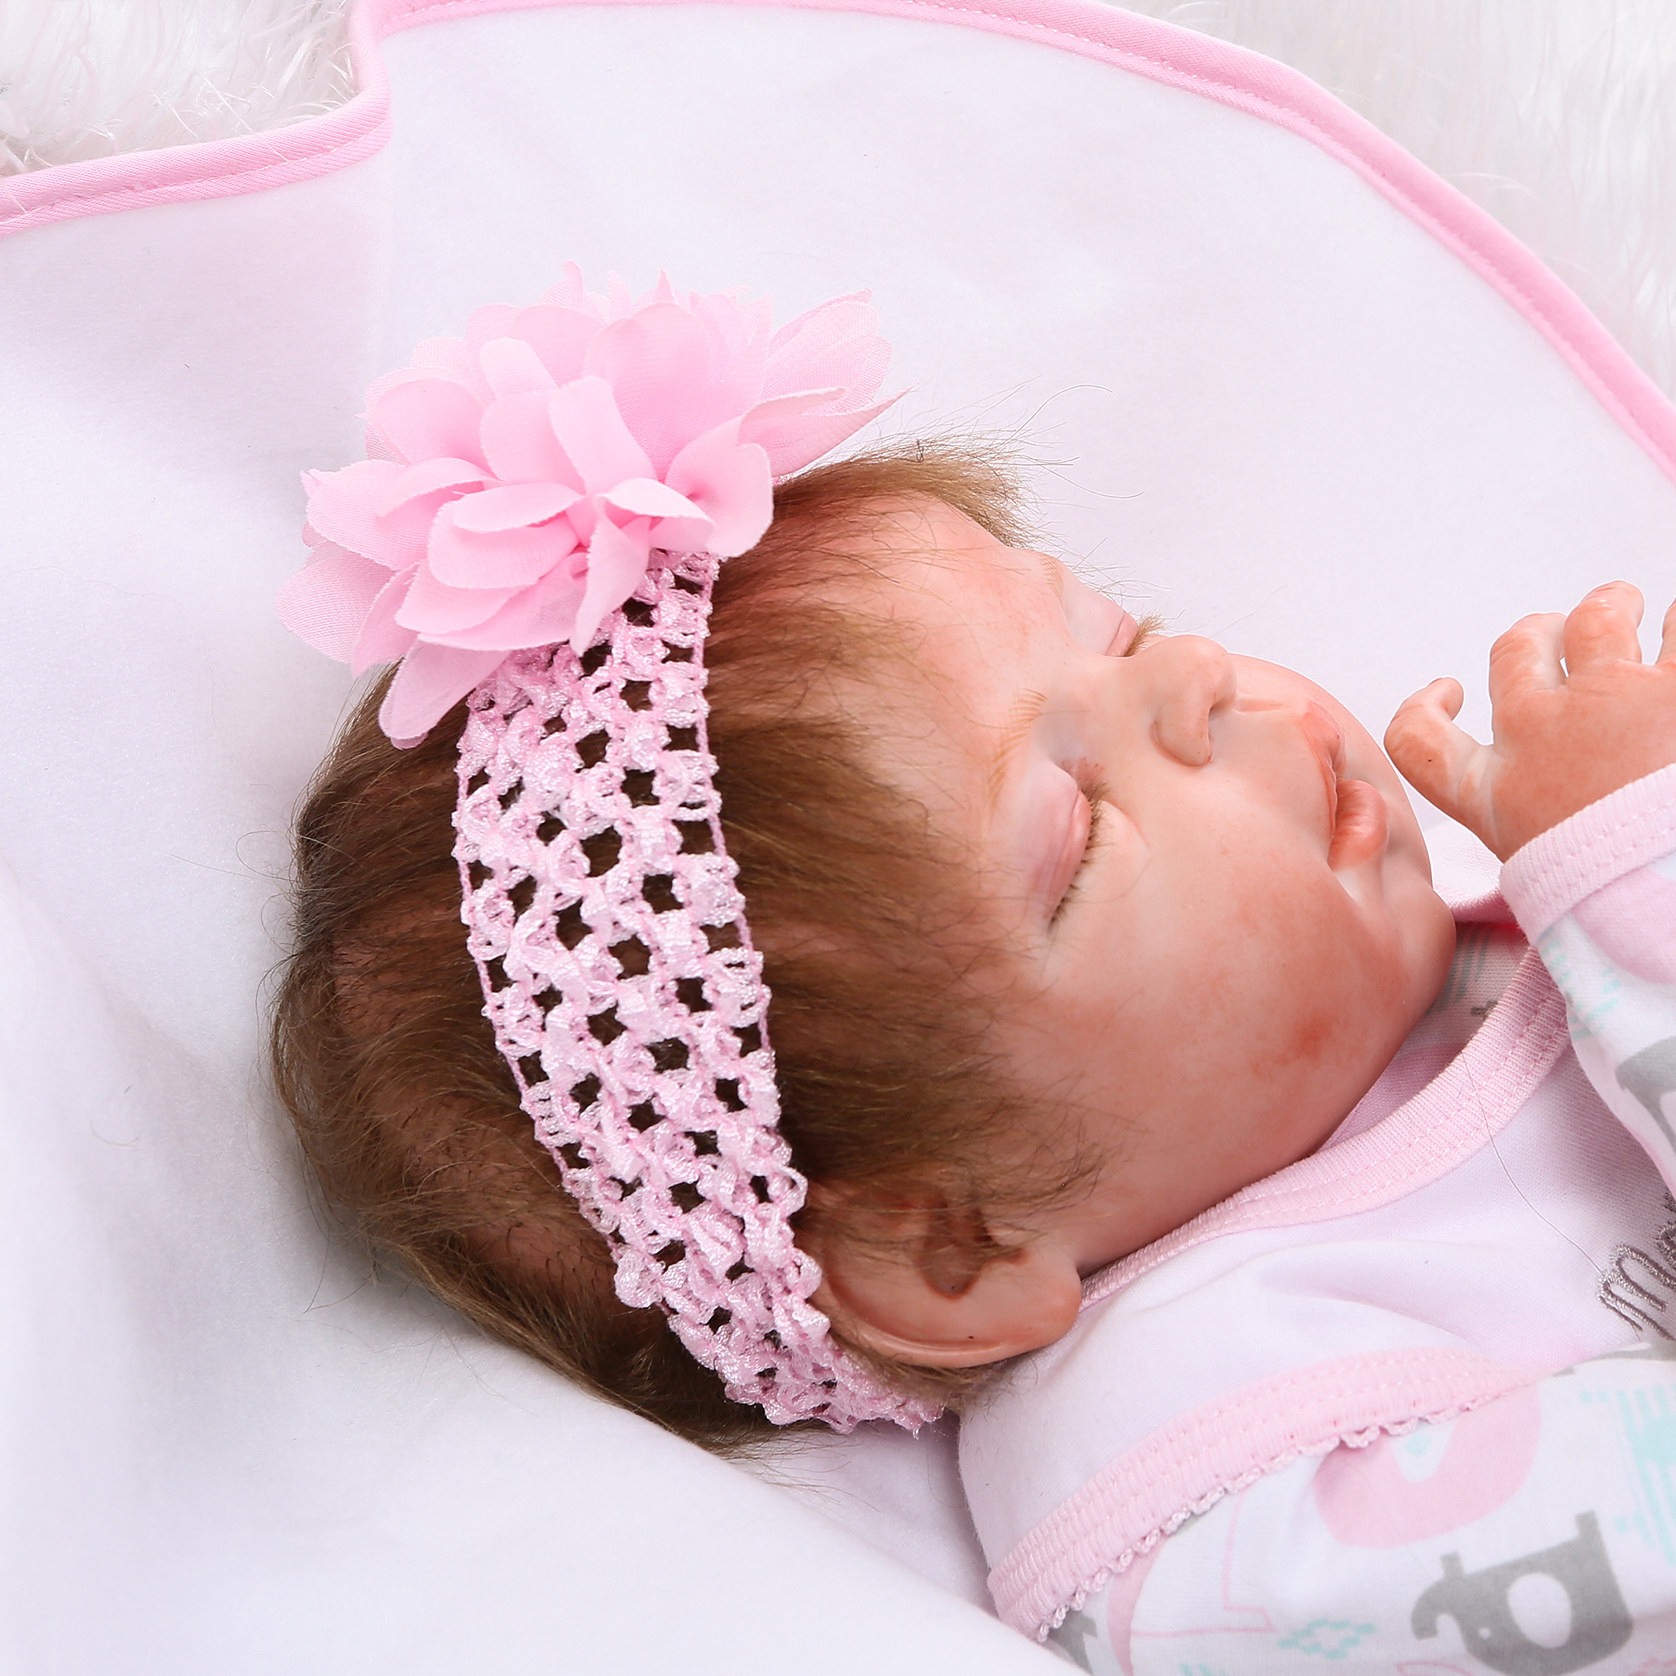 Image 4 - 48CM bebe realistic reborn premie baby doll hand detailed painting pinky look full body silicone Anatomically Correct-in Dolls from Toys & Hobbies